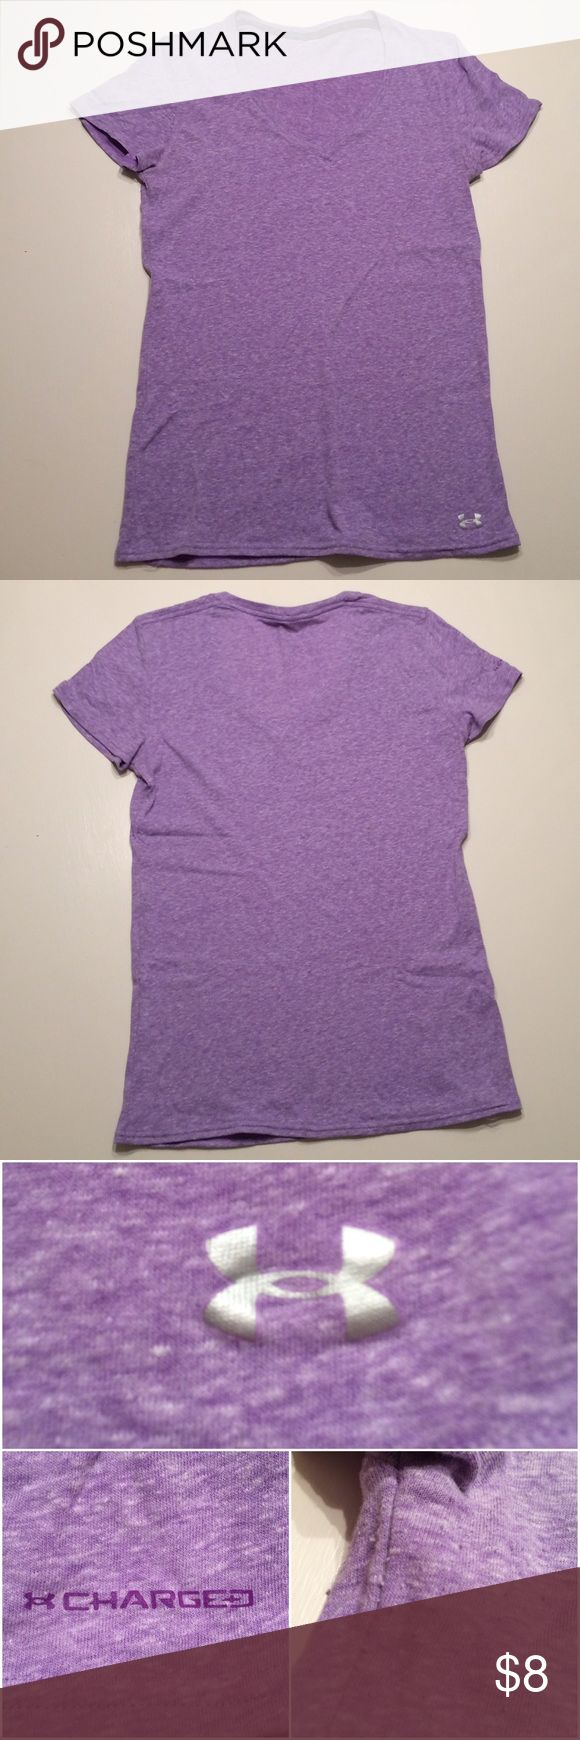 """Heathered purple under armour tee Medium under armour heathered light purple tee. Fits tight for a medium unless you like your shirts fitted, would recommend for someone who is a true small or a small medium. Only imperfection is some light pilling around under arms, easily fixed. Tag was removed due to being itchy, likely 💯% cotton or a blend. 17"""" armpit to armpit, 17"""" armpit to bottom. Great work out or causal tee Under Armour Tops Tees - Short Sleeve"""